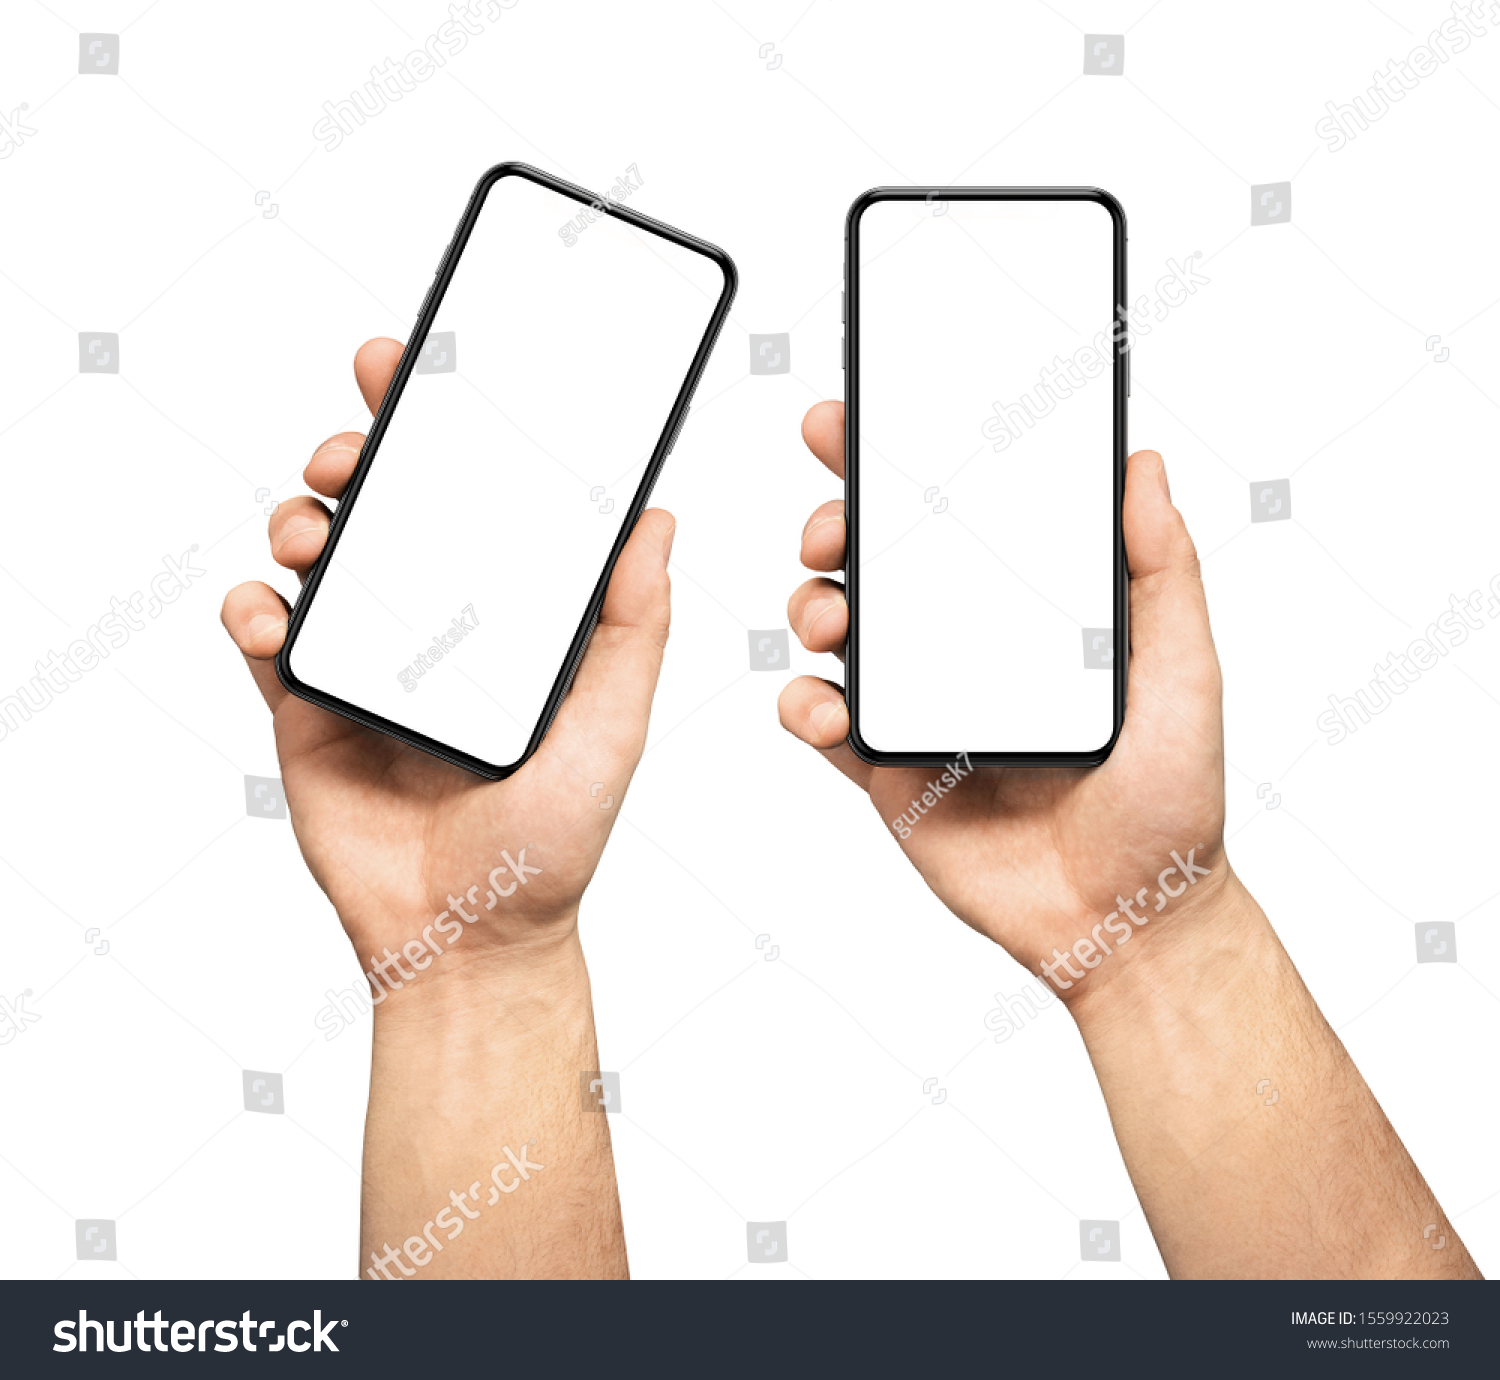 Male hand holding the black smartphone  blank screen with modern frameless design, two positions vertical and rotated - isolated on white background #1559922023